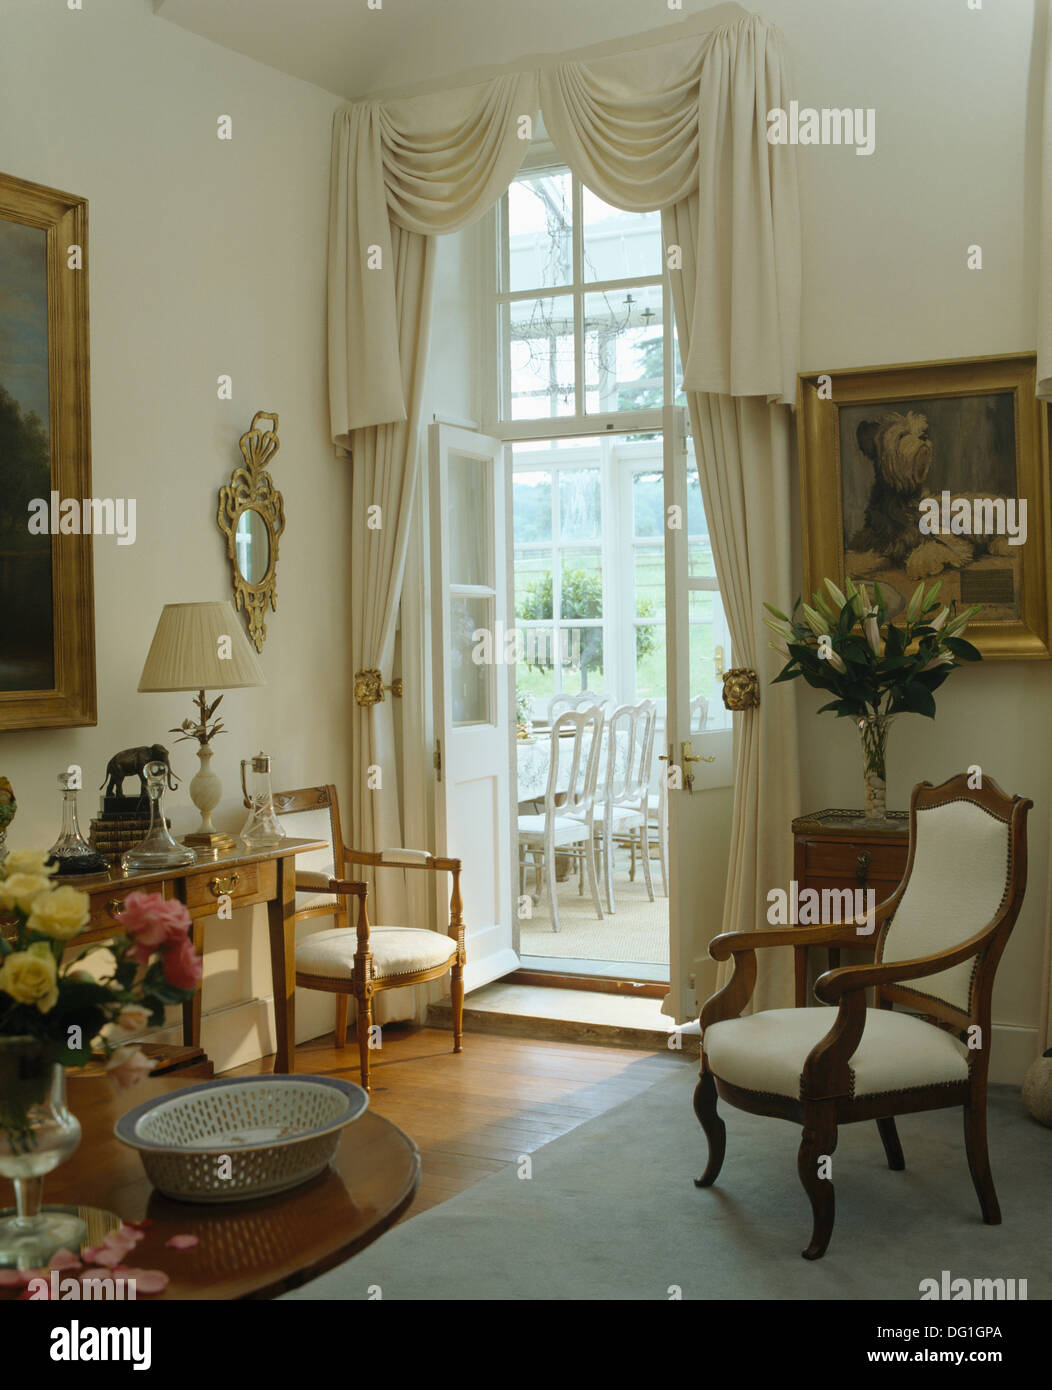 Cream Upholstered Chair In Country Drawing Room With Cream Curtains On  French Windows To Dining Room